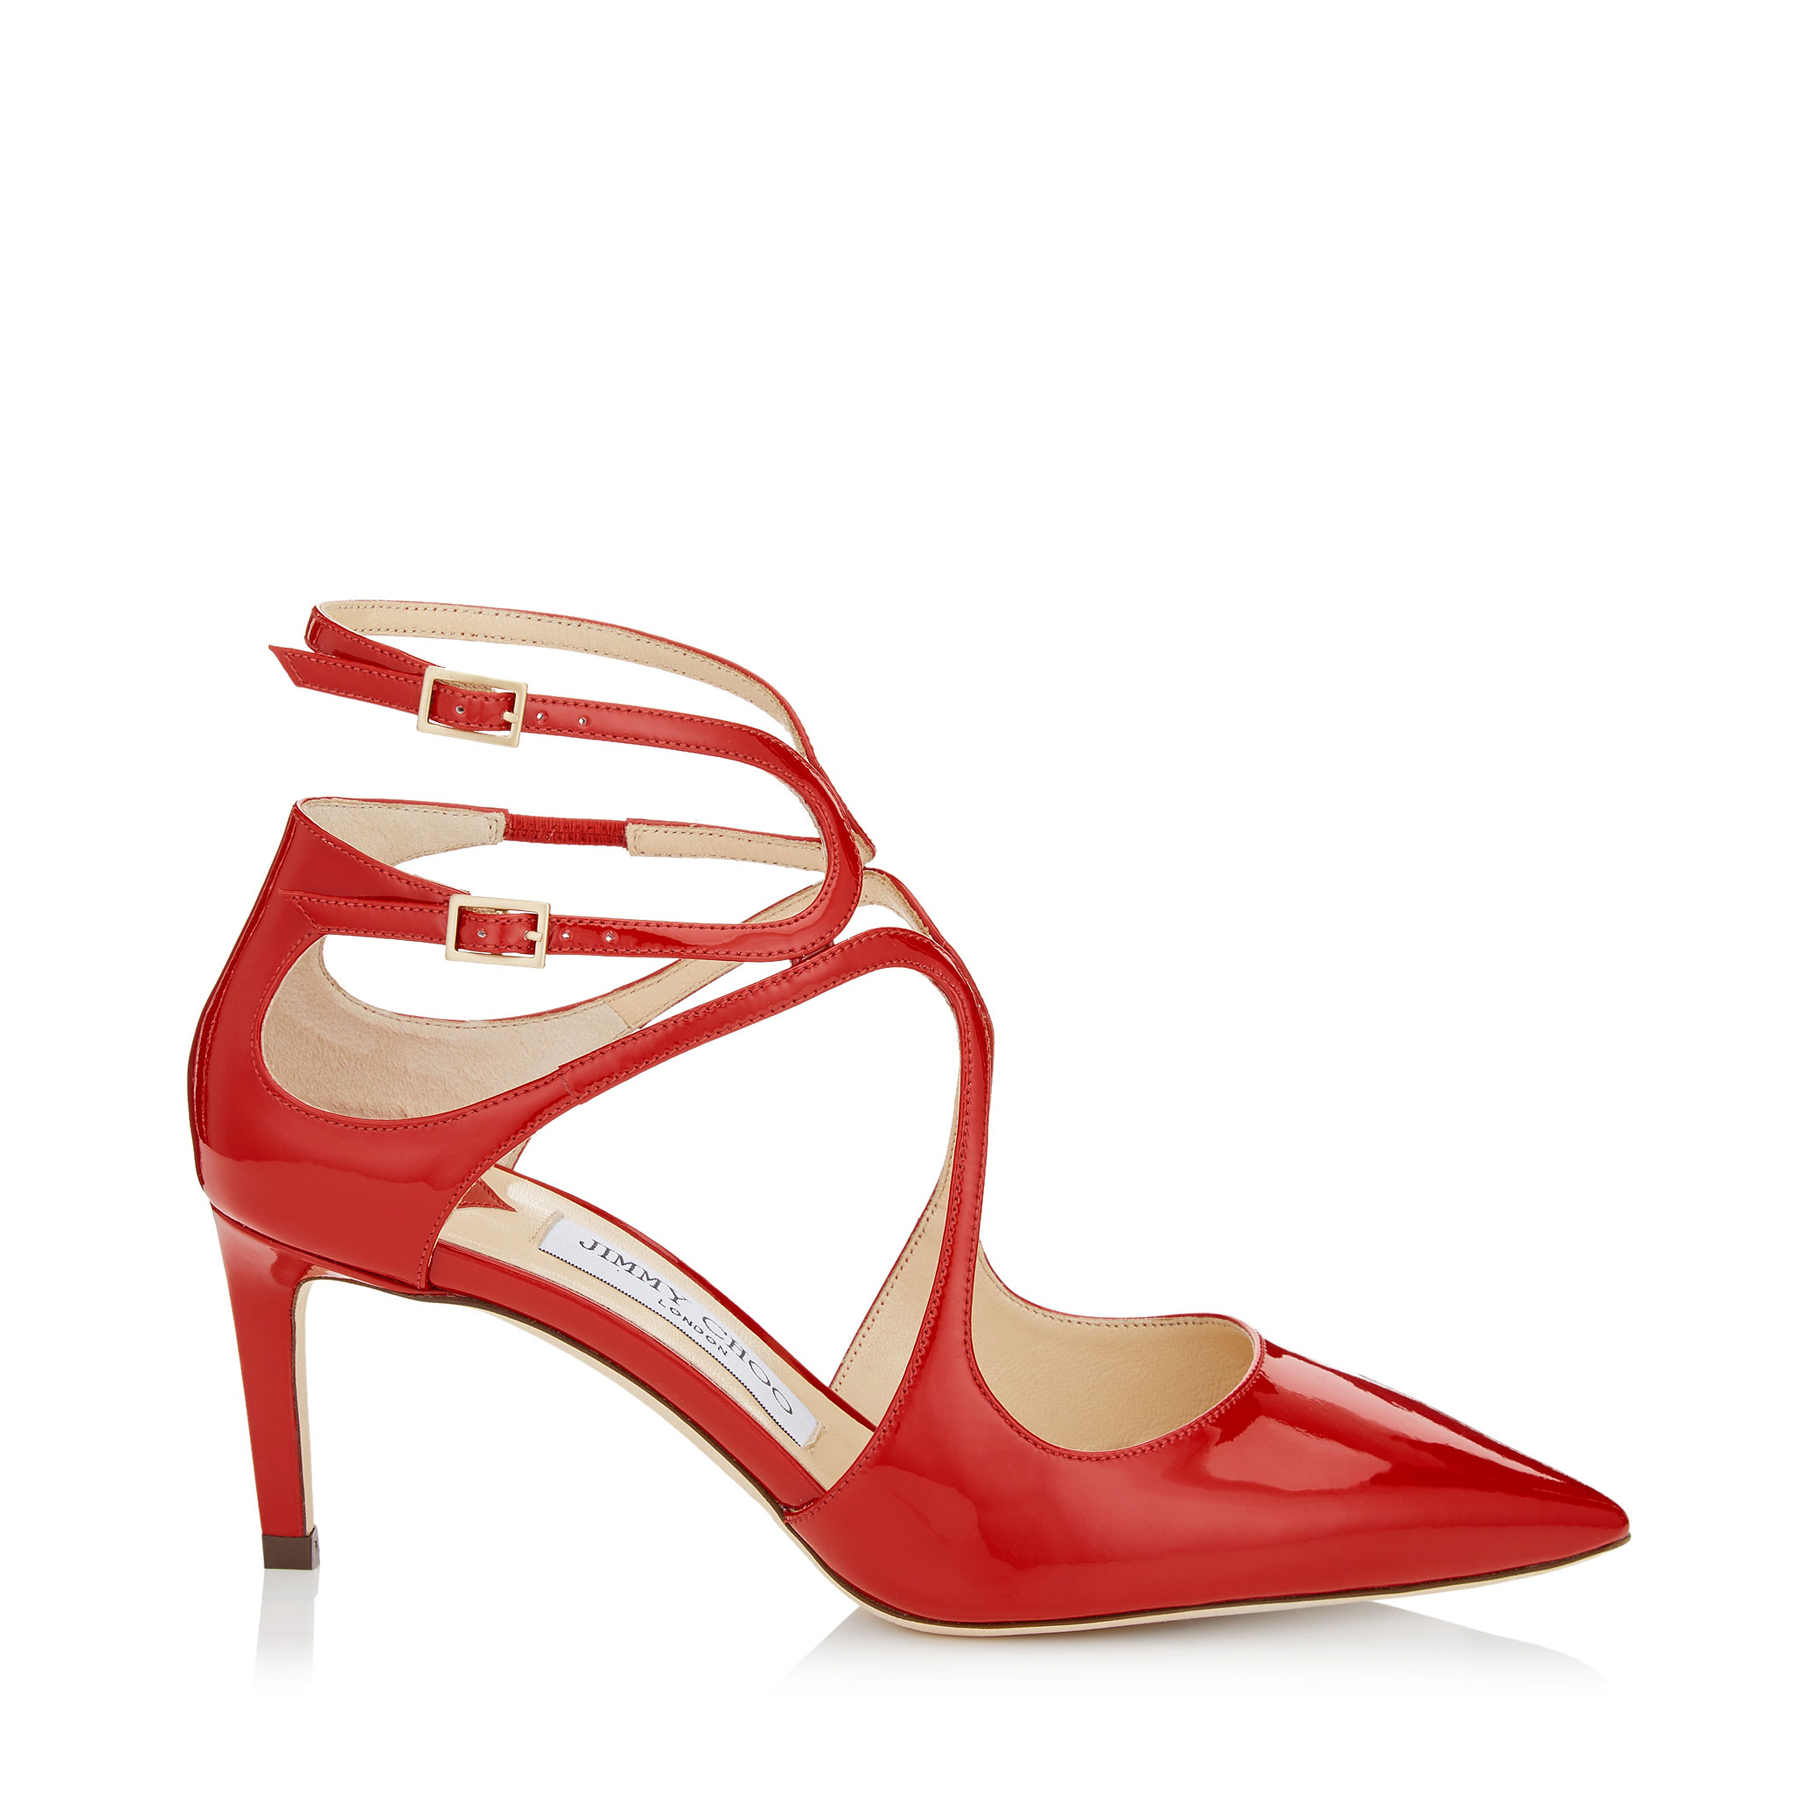 LANCER 65 Red Patent Leather Pointy Toe Pumps by Jimmy Choo